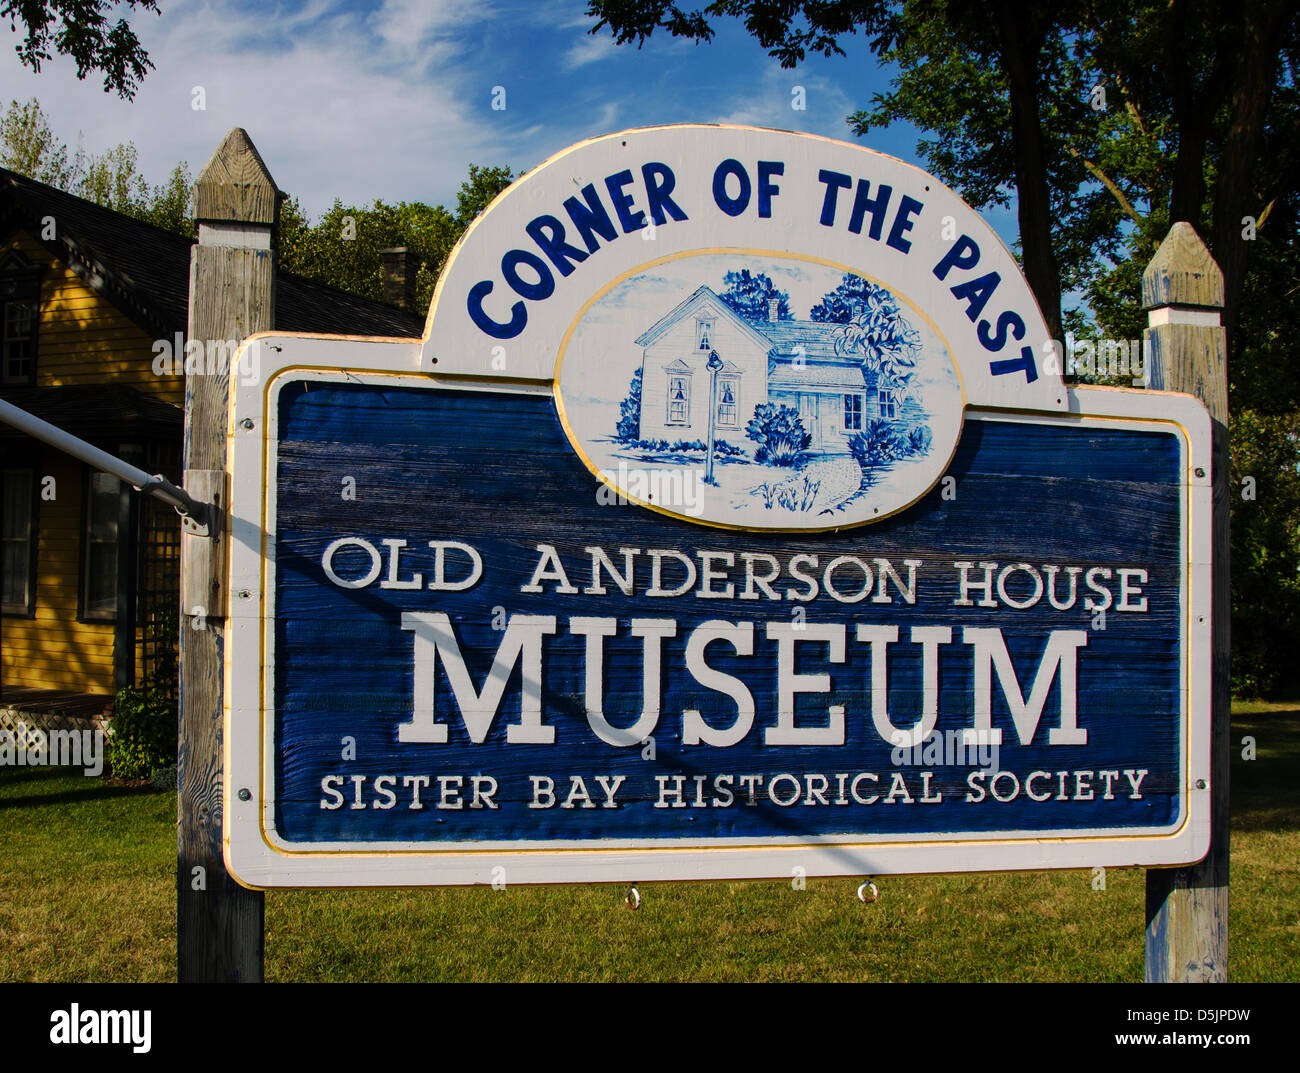 Sign for the Corner of the Past Museum and the Anderson House Museum in the Door County town of Sister Bay, Wisconsin - Stock Image